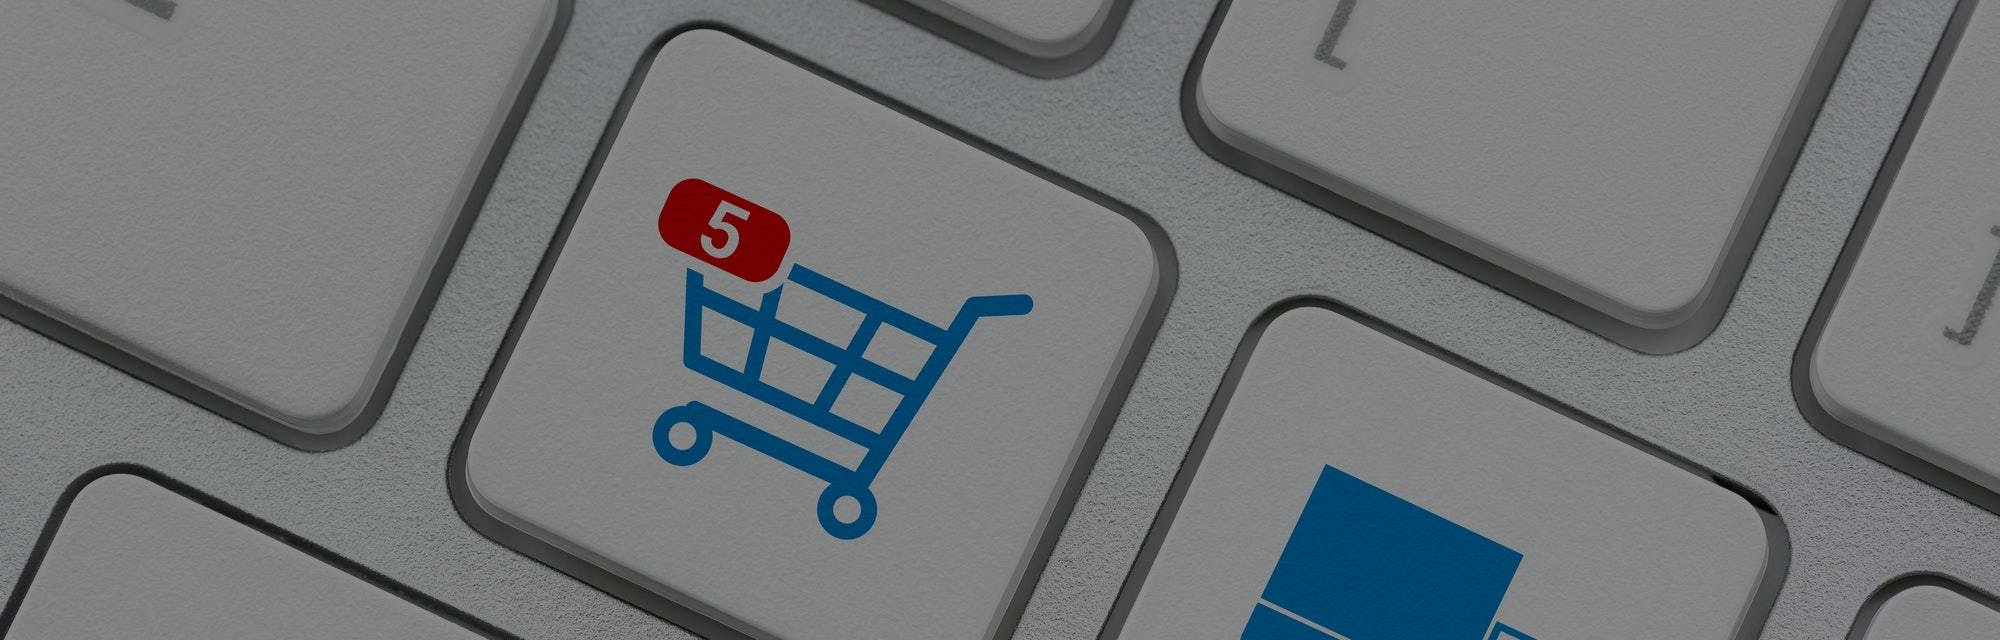 """A white and blue keyboard can be seen with symbols for different types of market actions. One key shows a cart with a red symbol for """"5"""" denoting that the user has bought five items for their cart."""